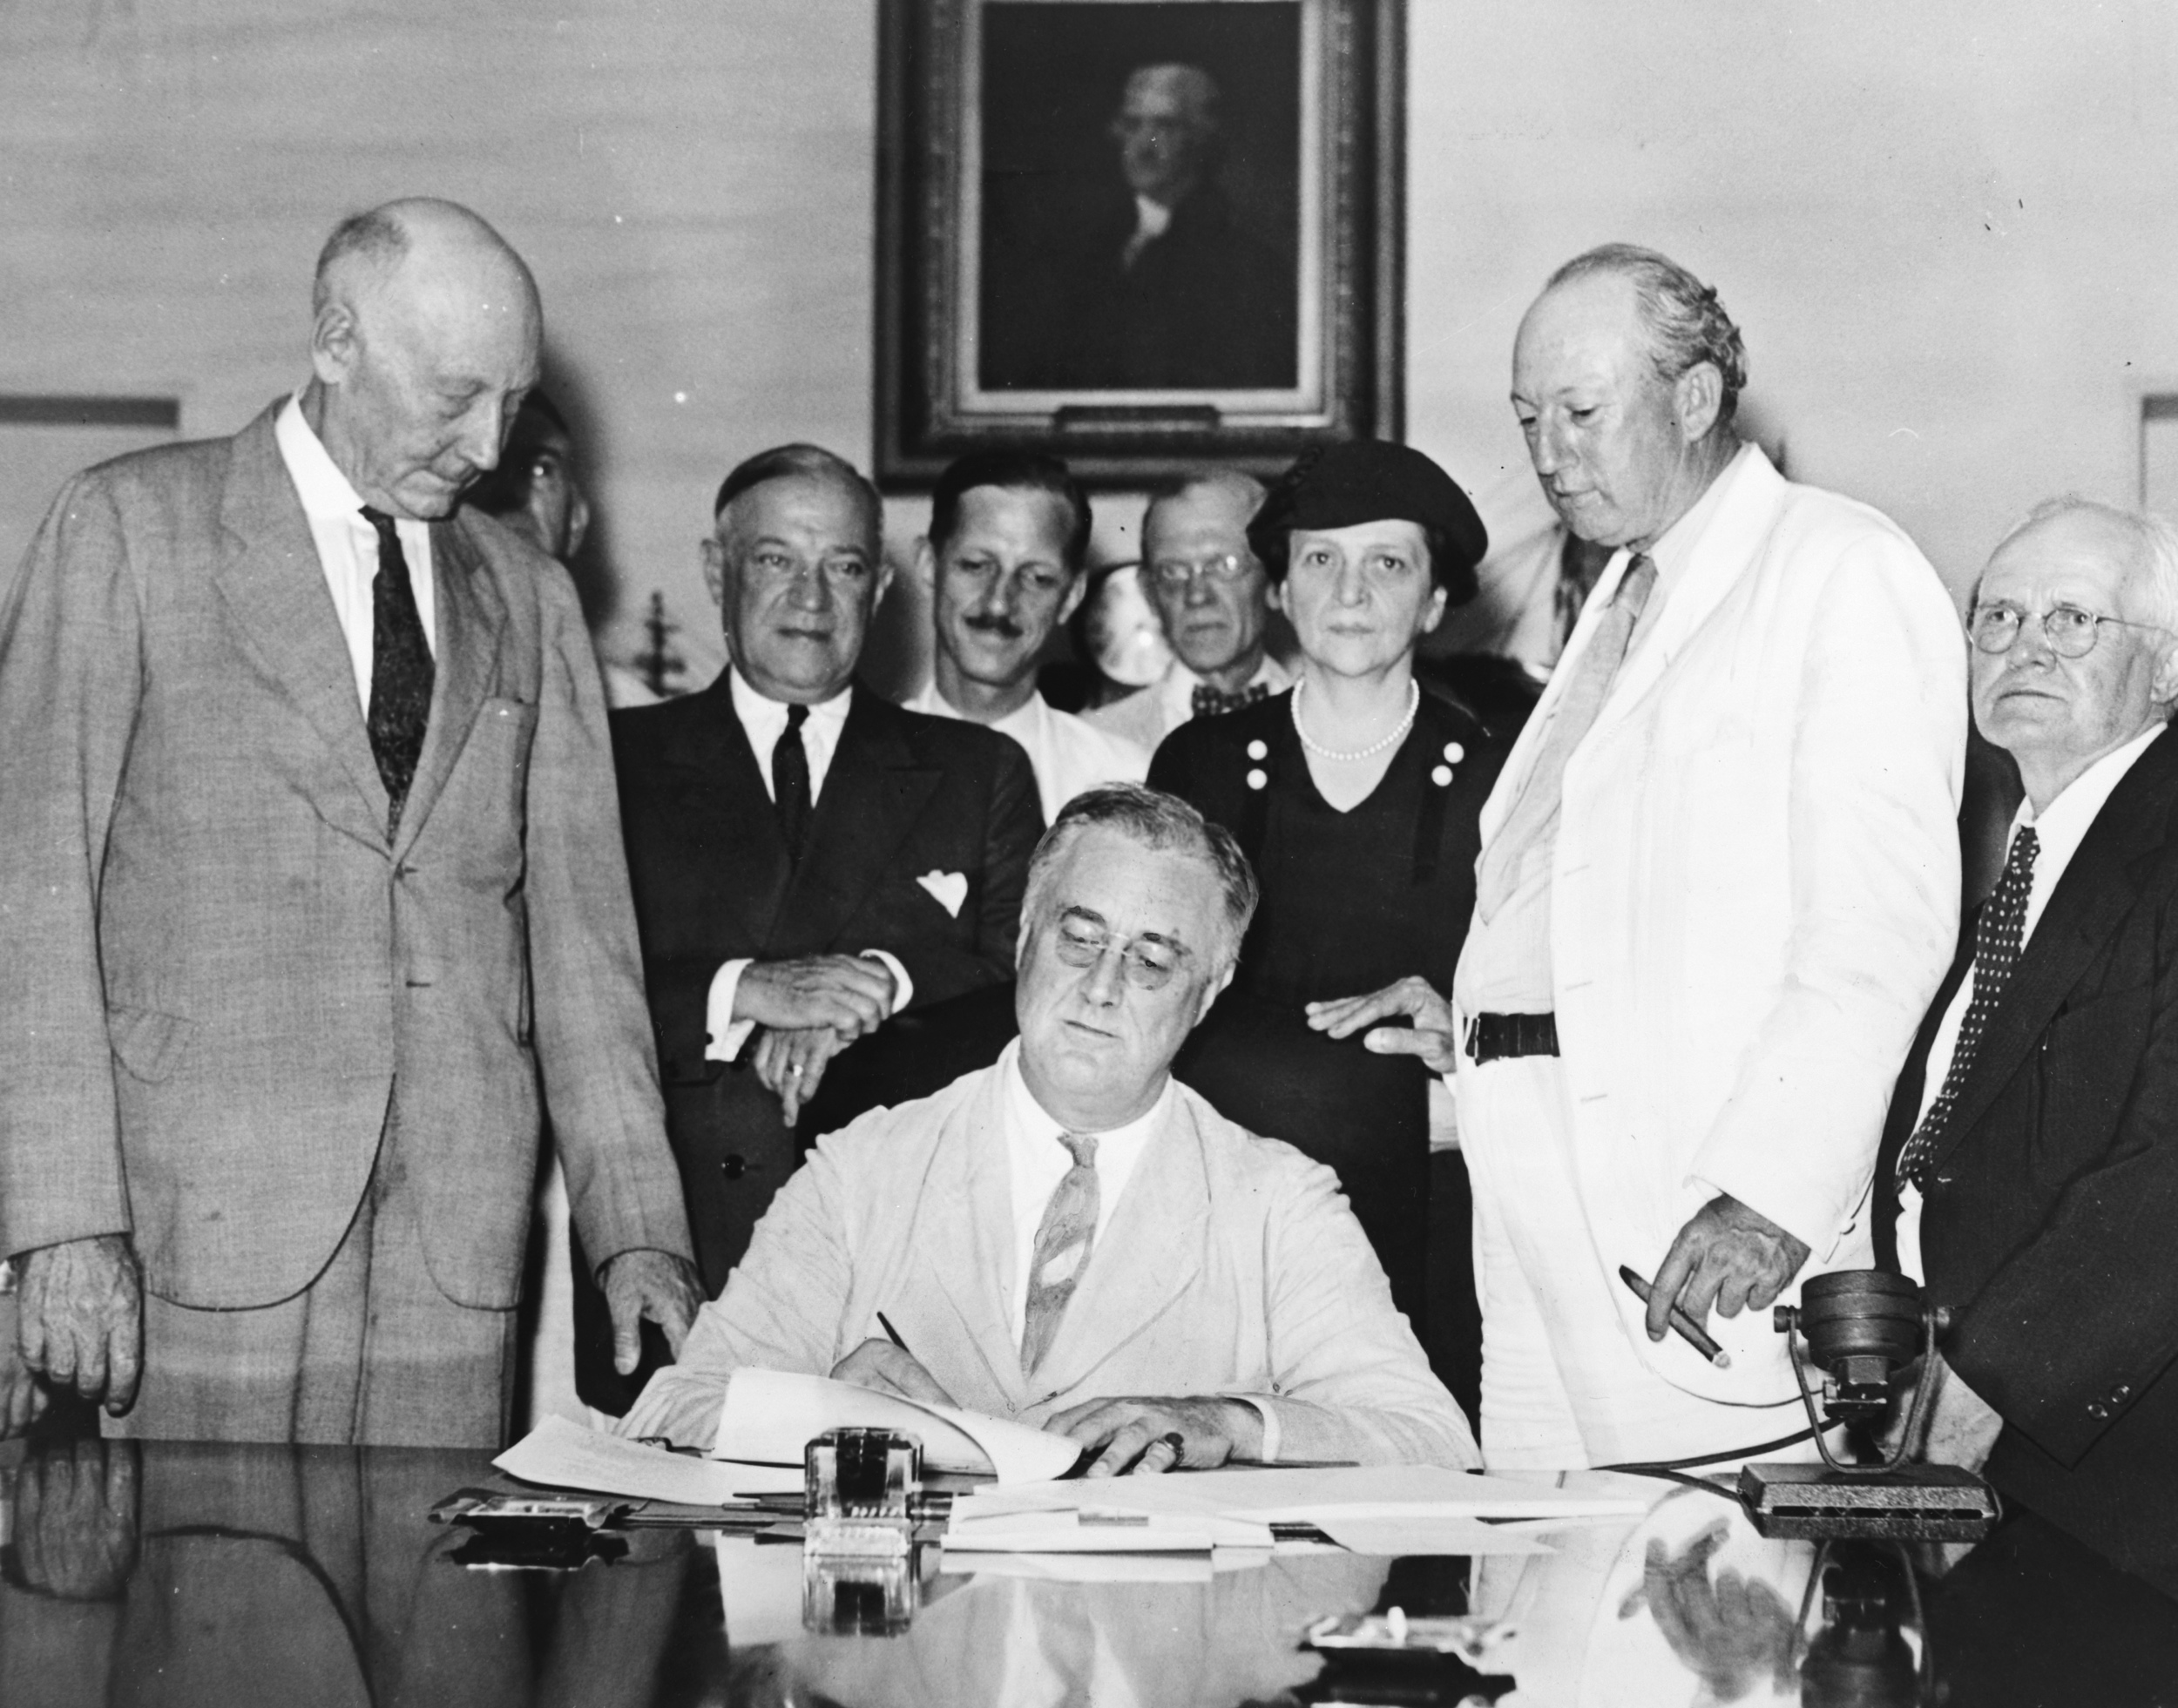 Secretary of Labor Frances Perkins, the only woman present asRoosevelt signed the Social Security Act in 1935. LOC